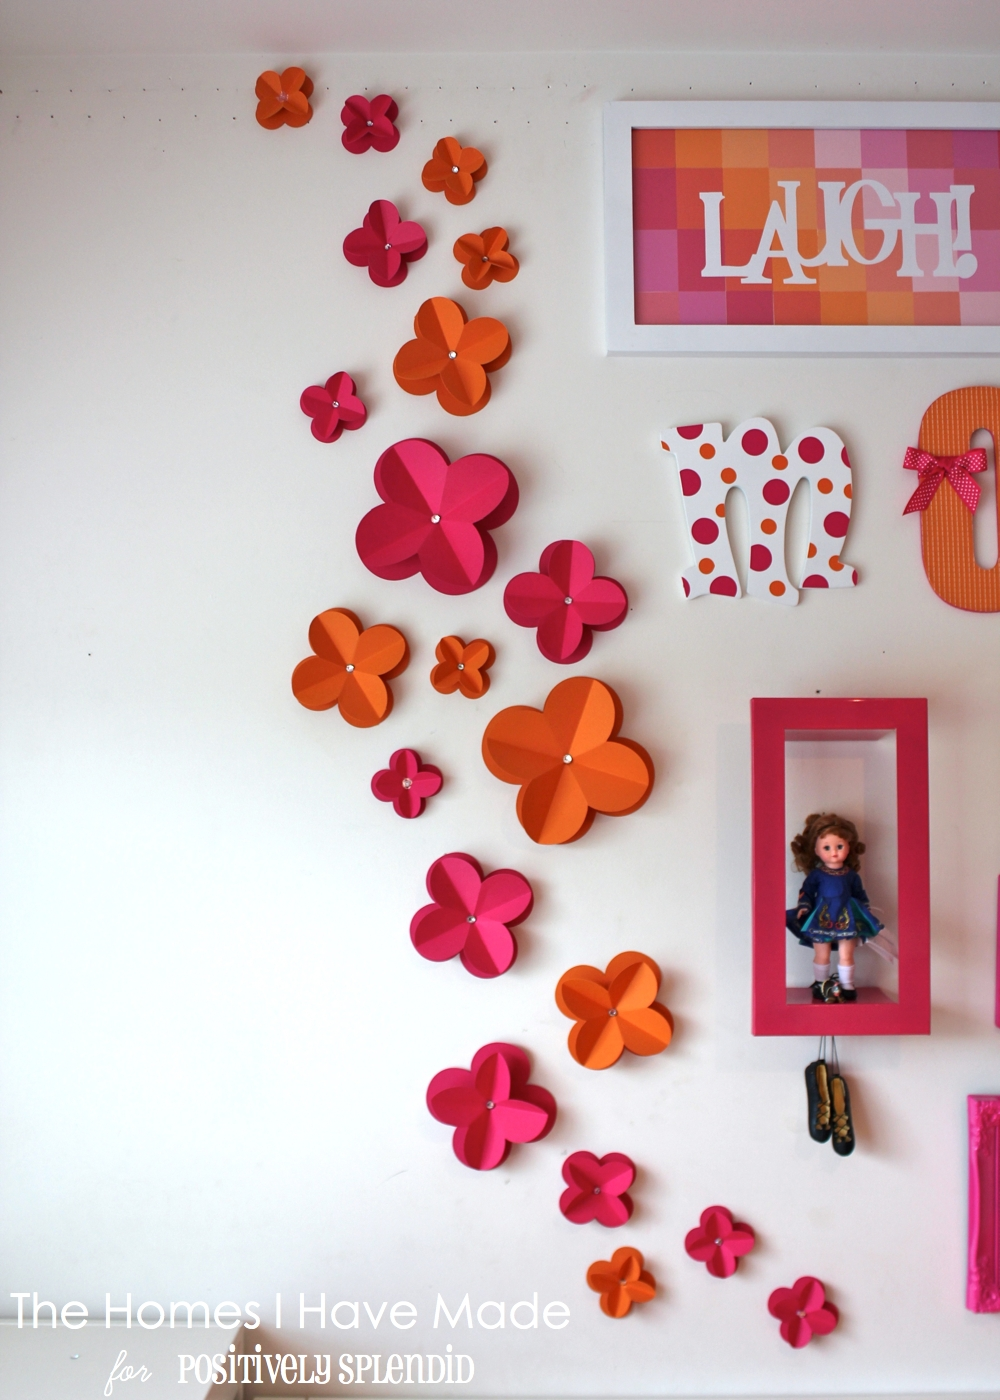 3d paper wall flowers positively splendid crafts sewing recipes and home decor Home decor crafts with paper